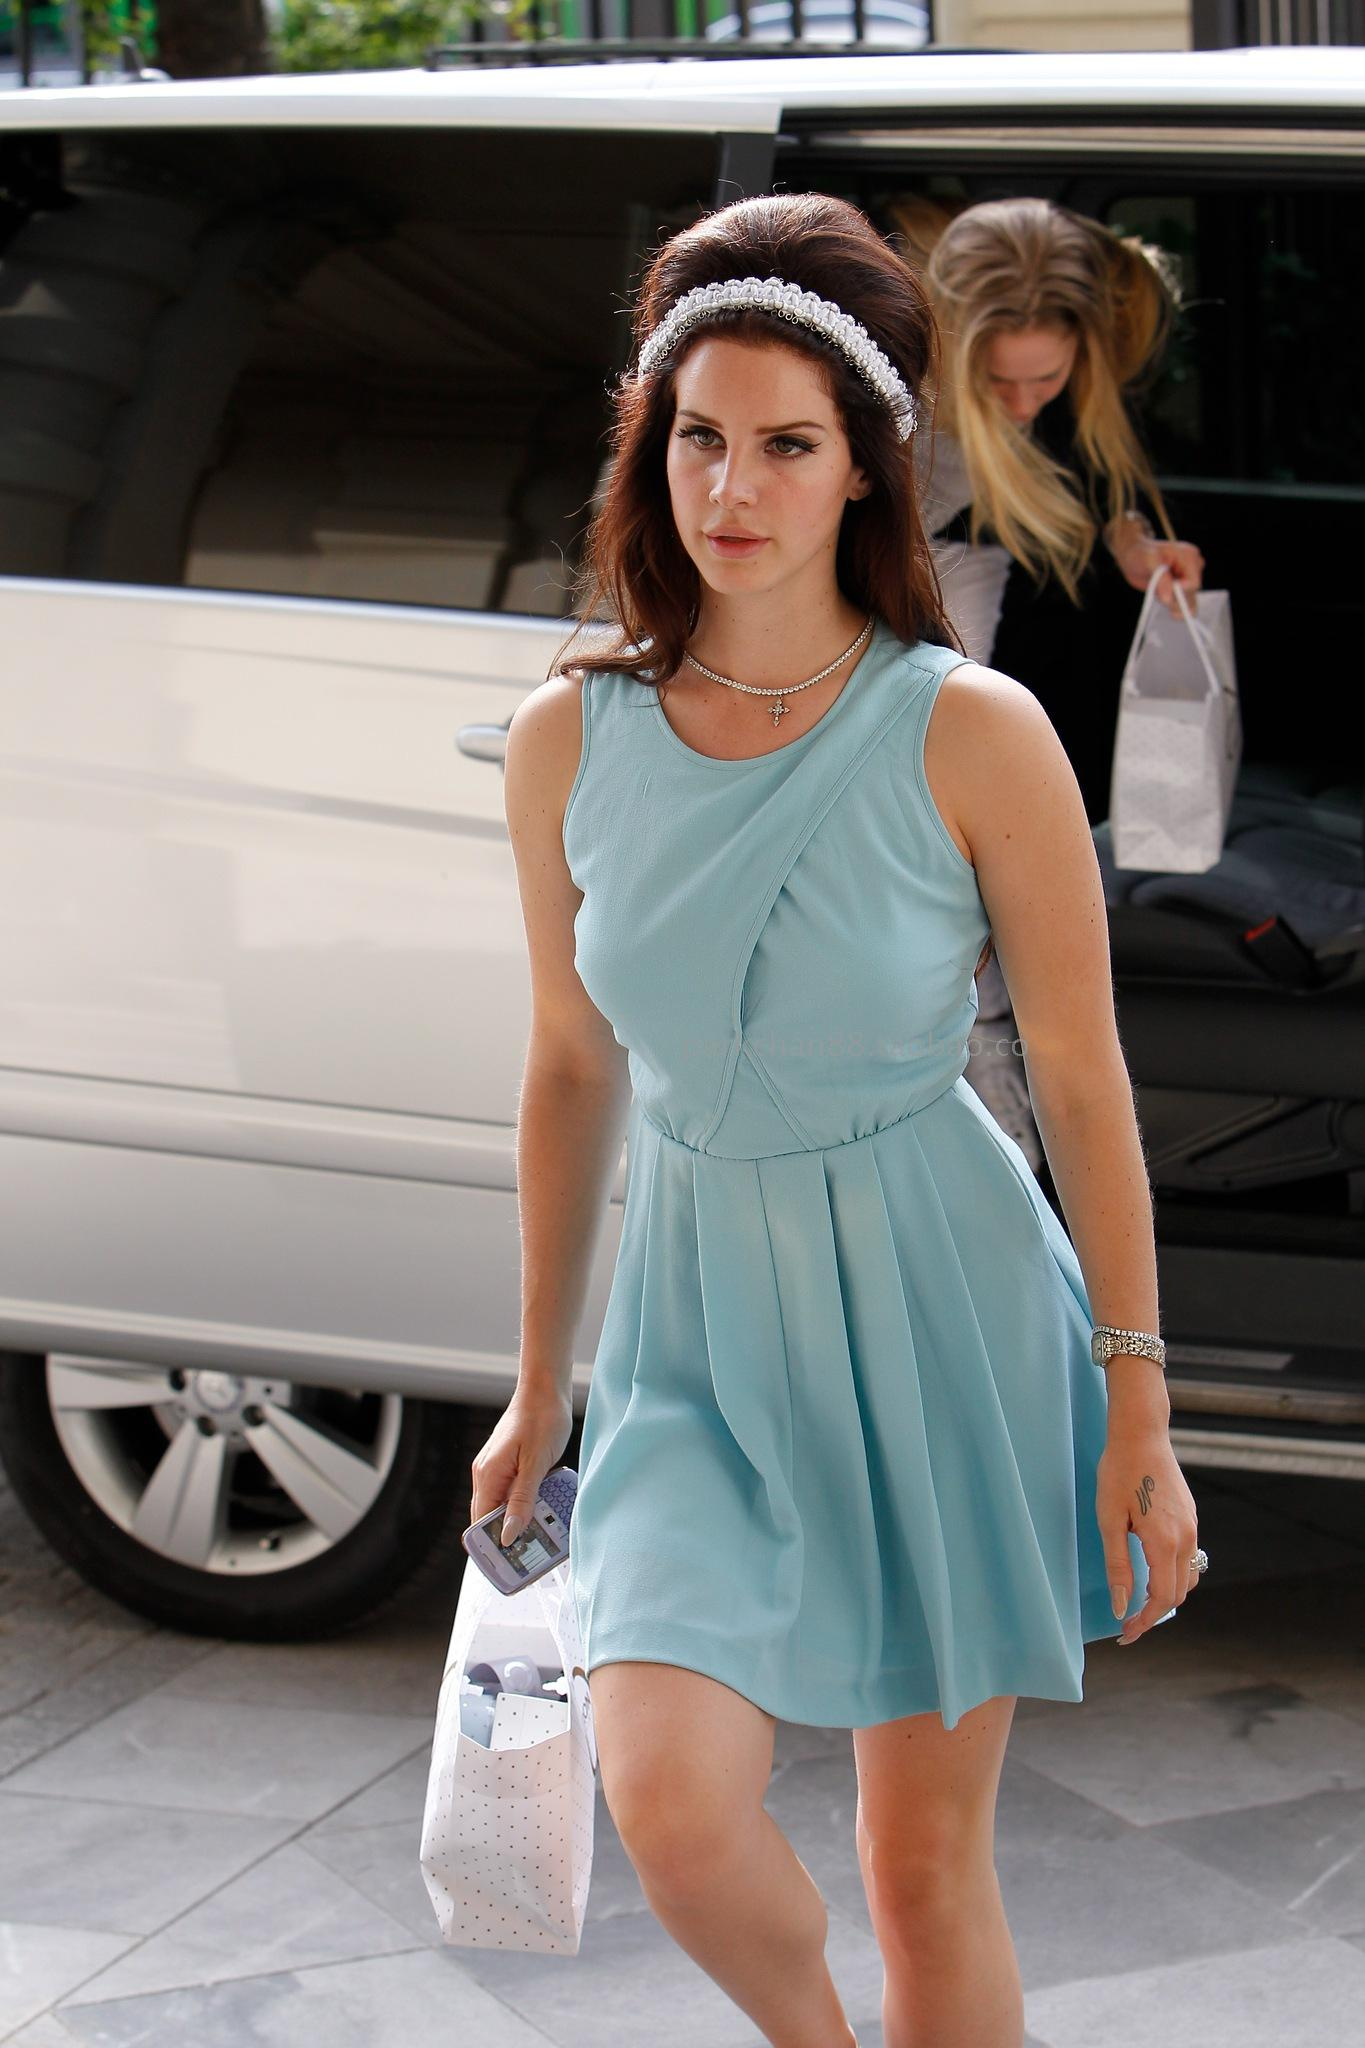 Thea shop Advanced lana del rey fresh vintage midsweet unique light blue one piece dress-inDresses from Apparel & Accessories on Aliexpress.com